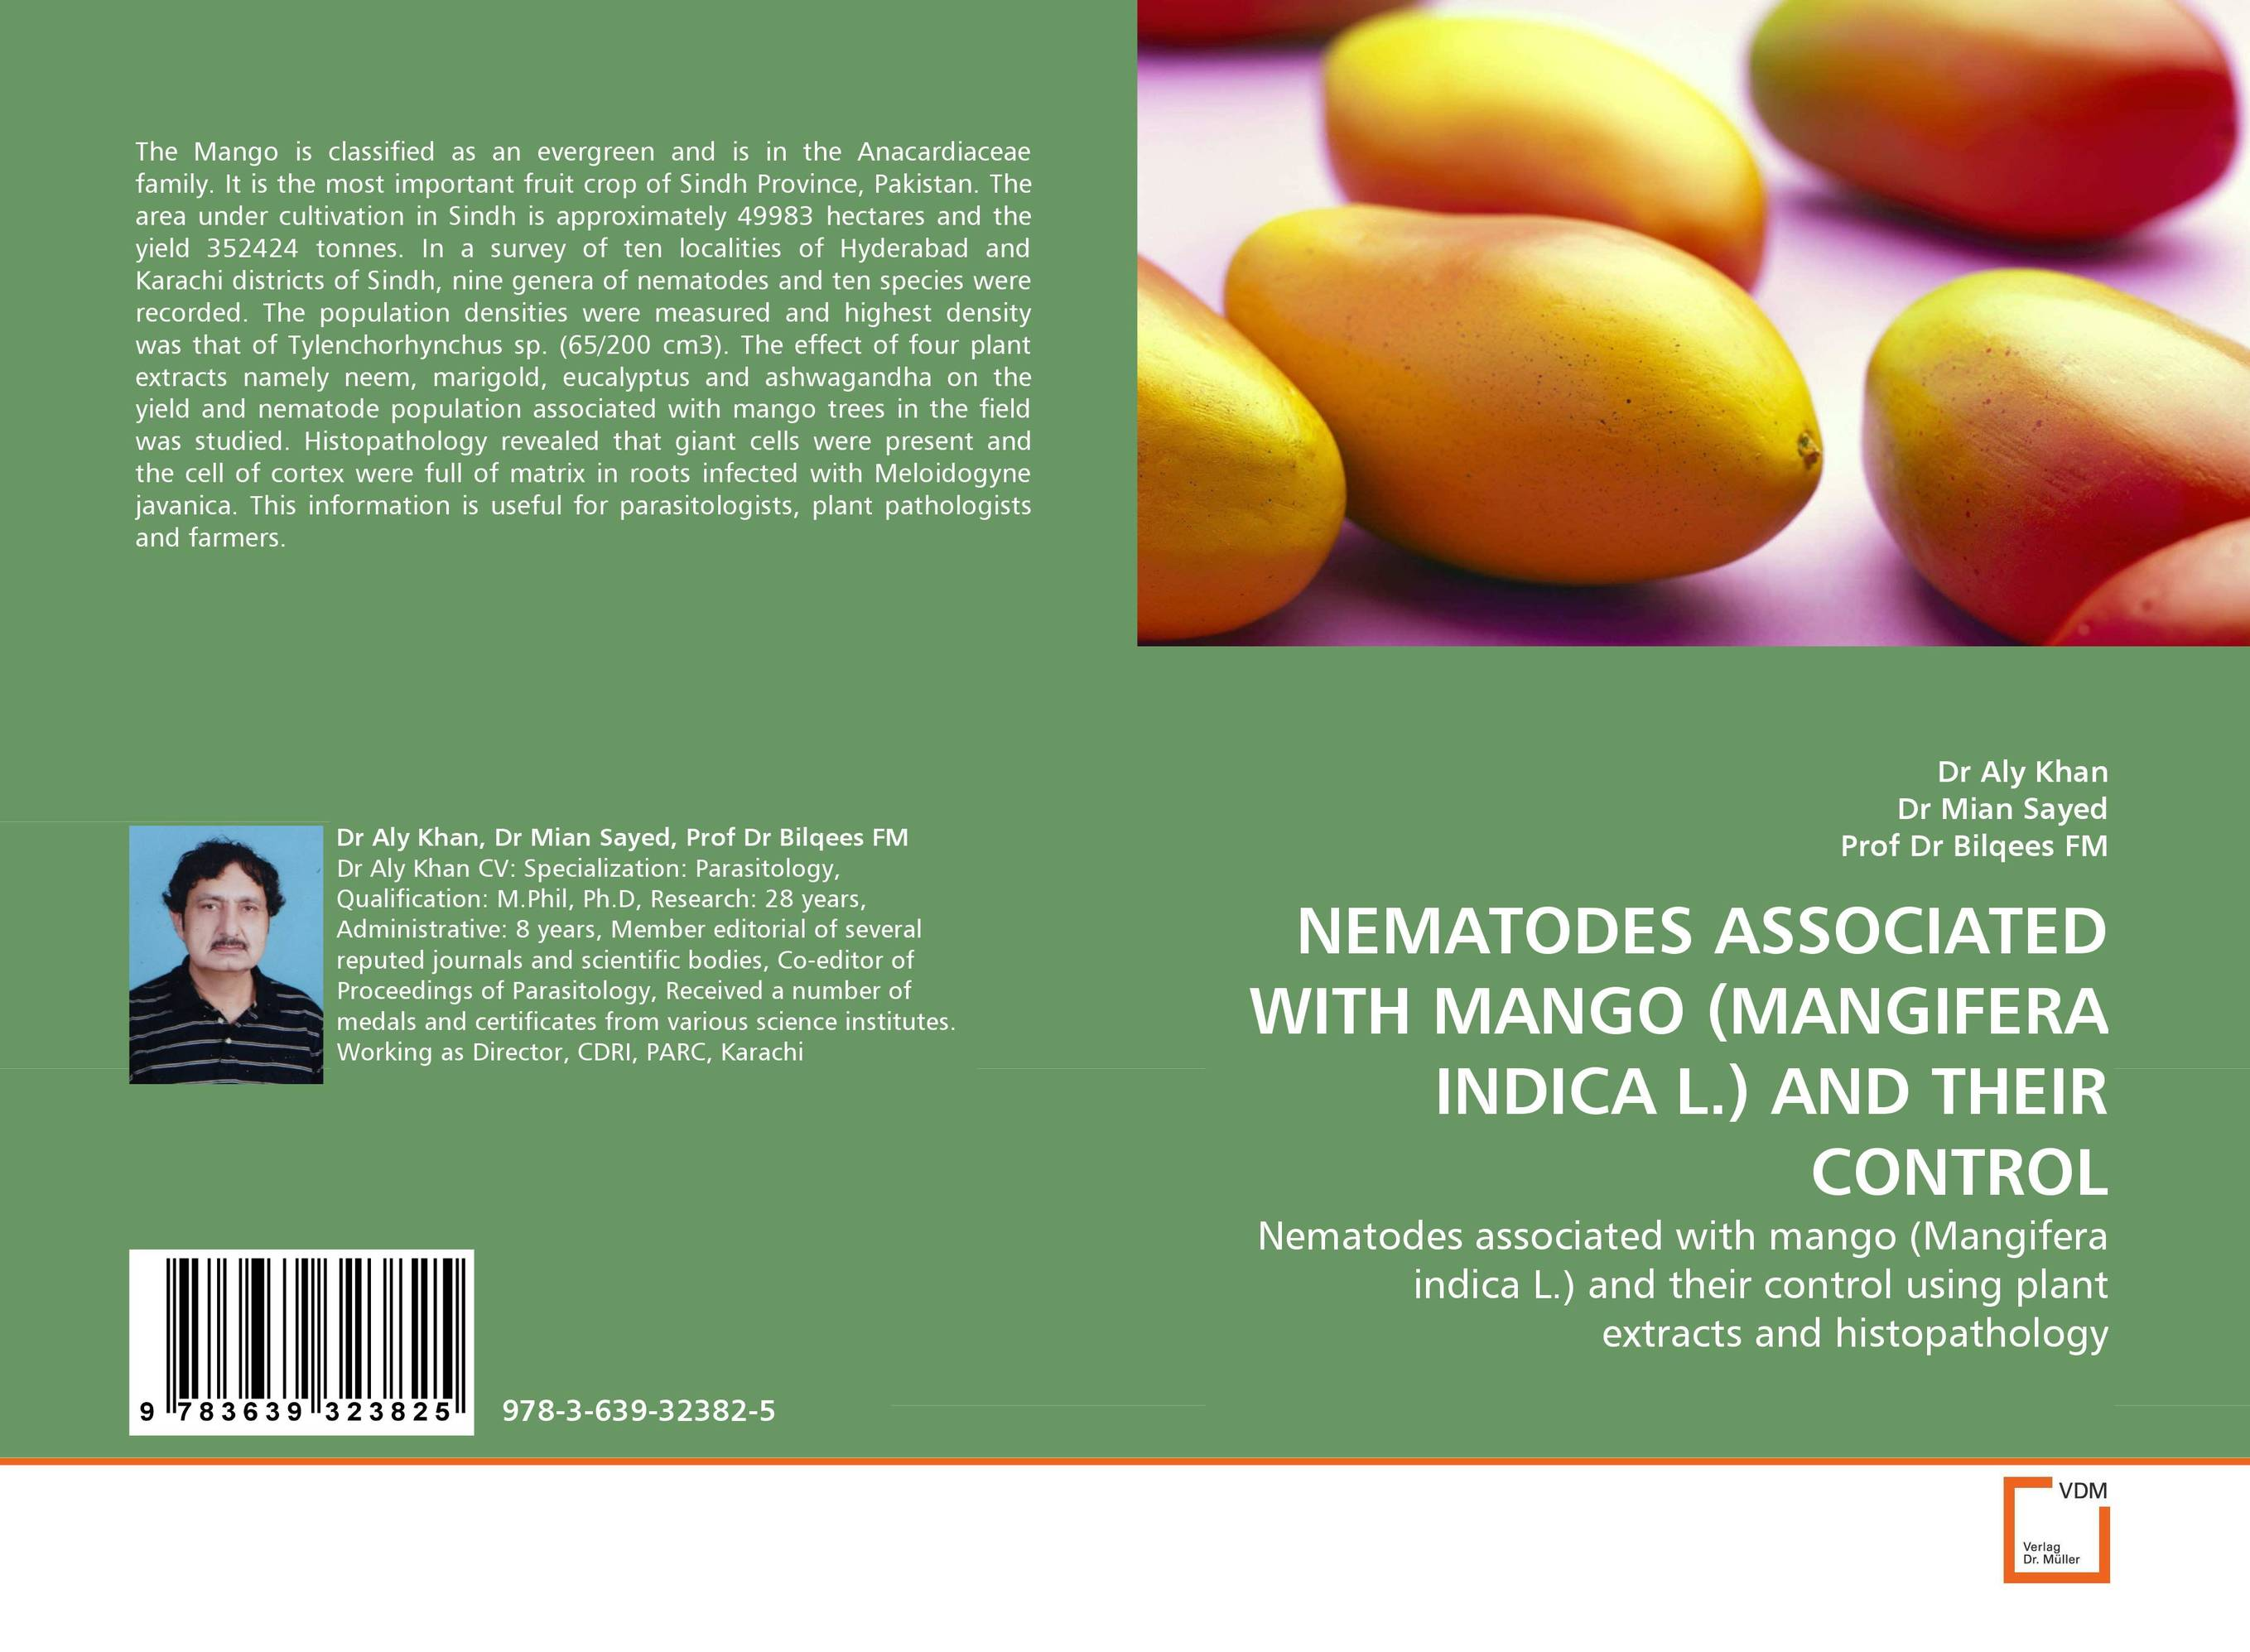 NEMATODES ASSOCIATED WITH MANGO (MANGIFERA INDICA L.) AND THEIR CONTROL functional capacity of mango leave extracts